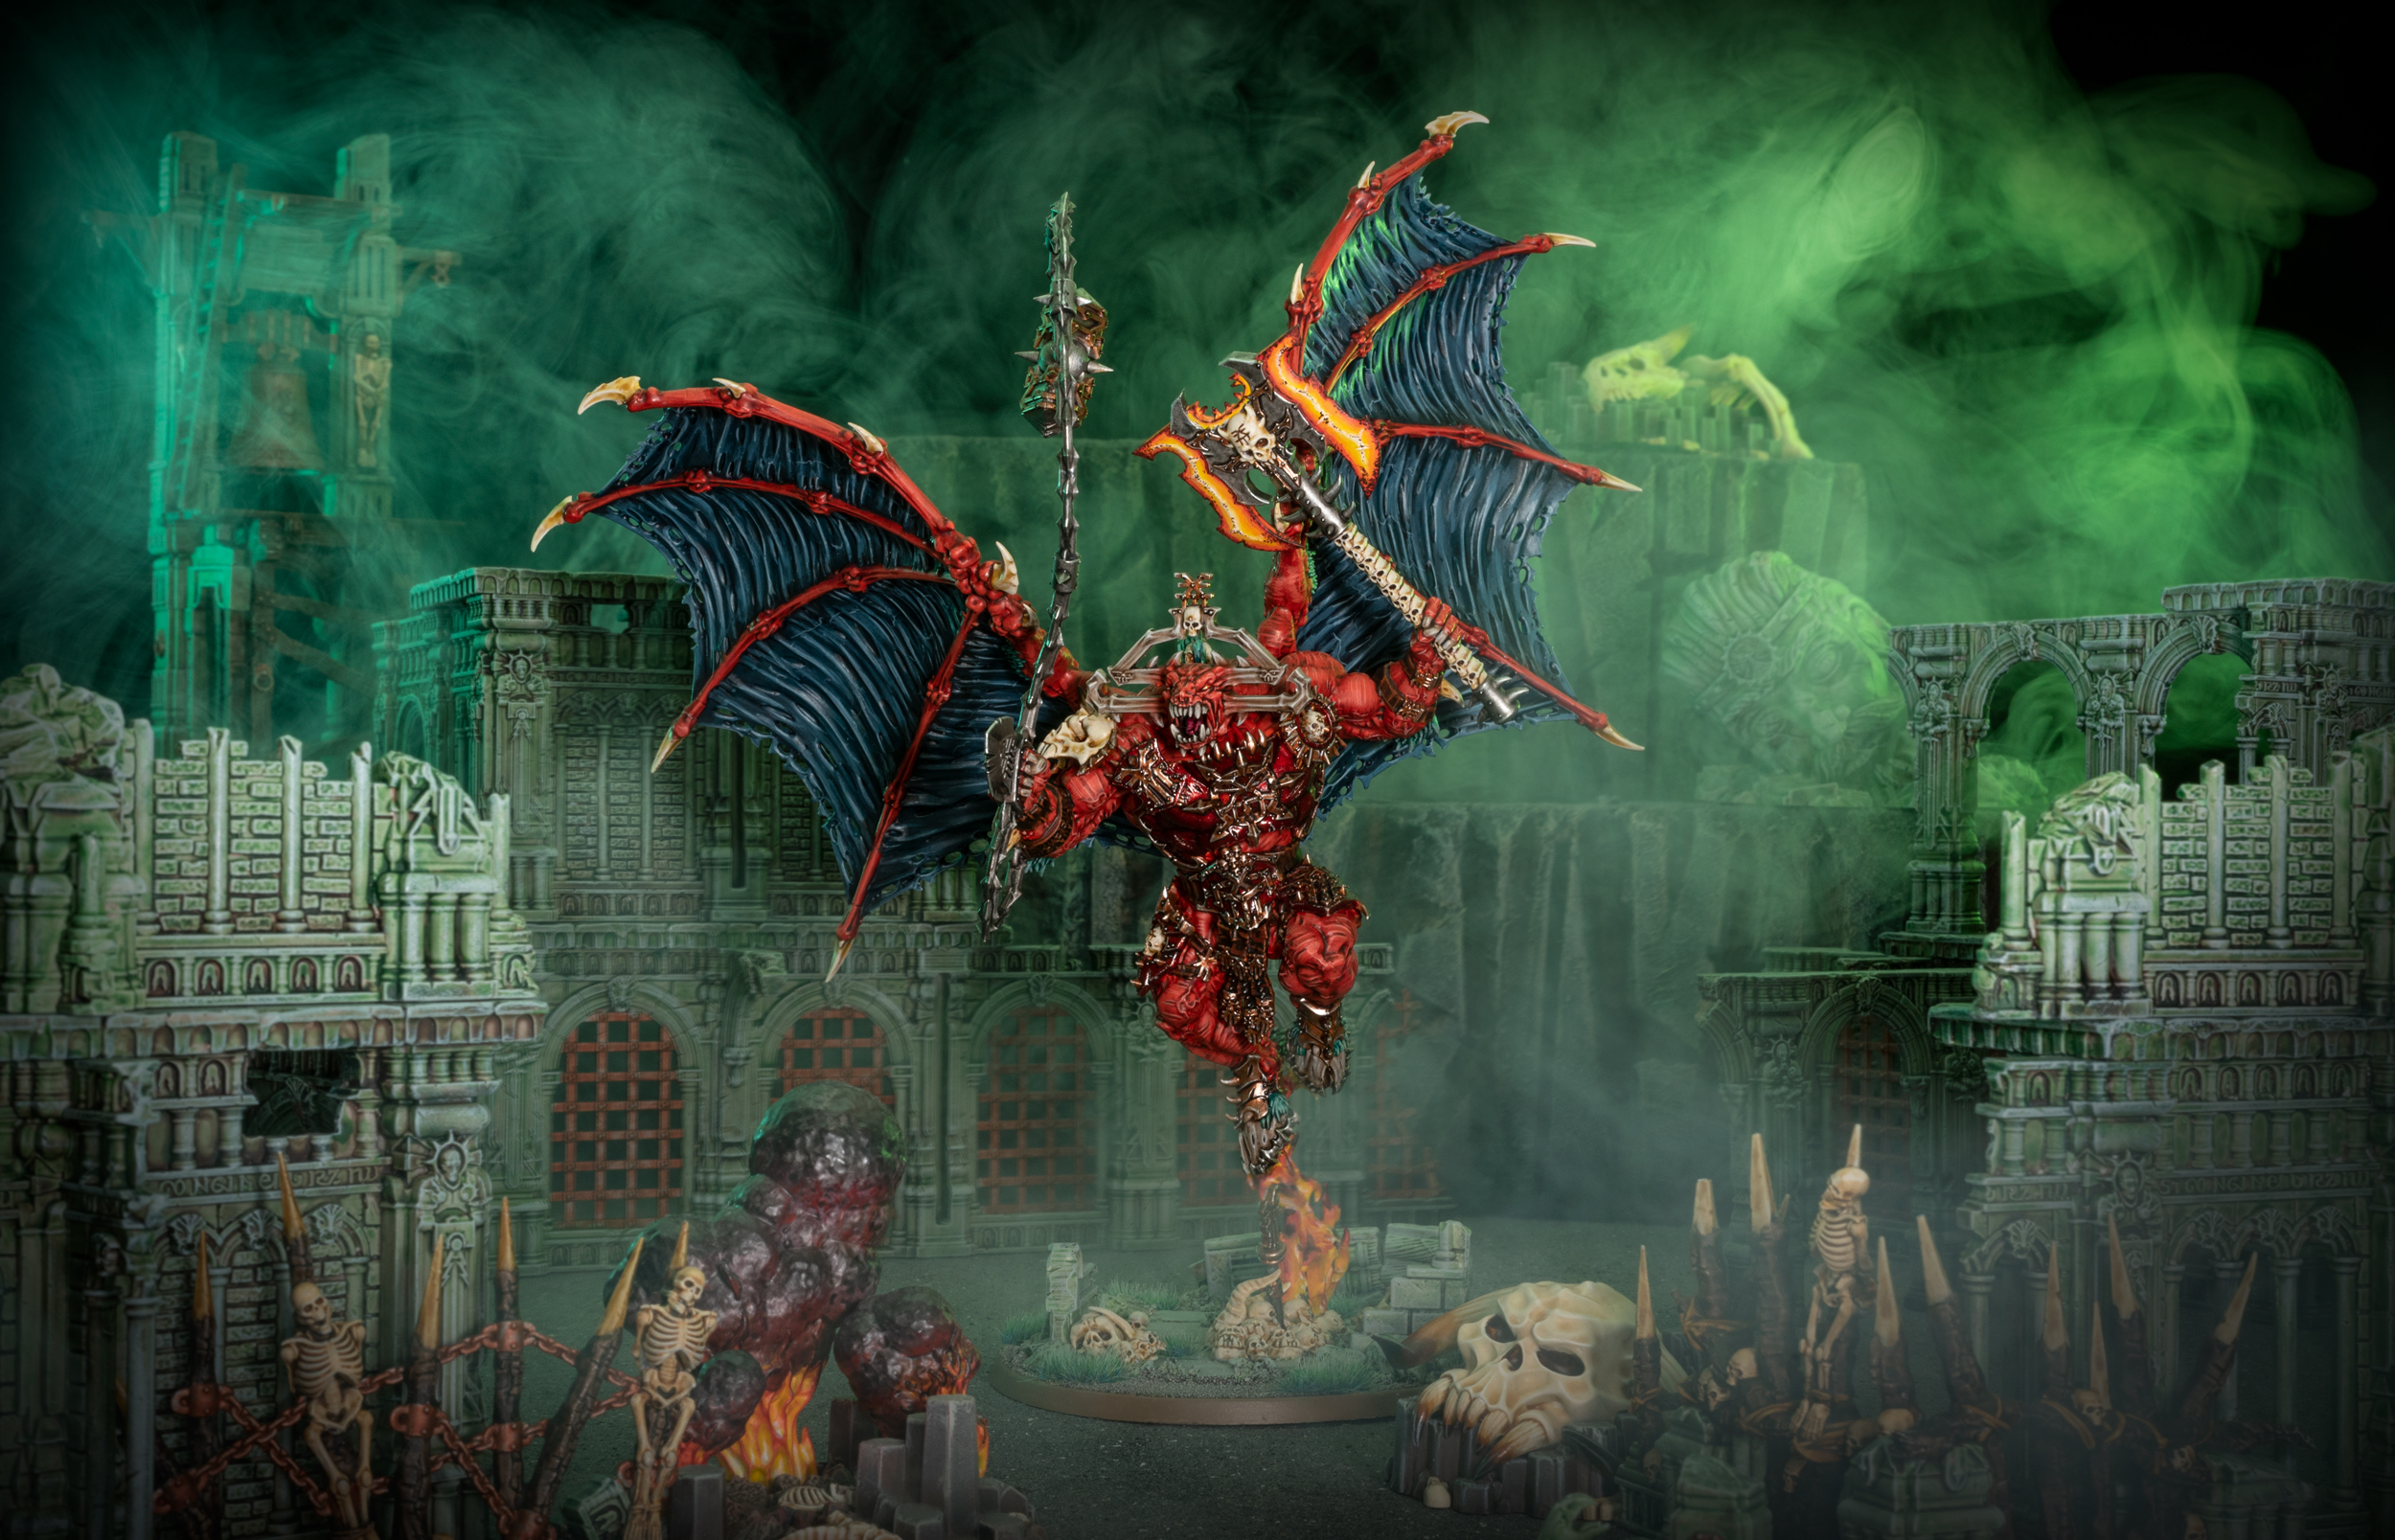 A Red demonic bloodthirster rampages through a ruined city